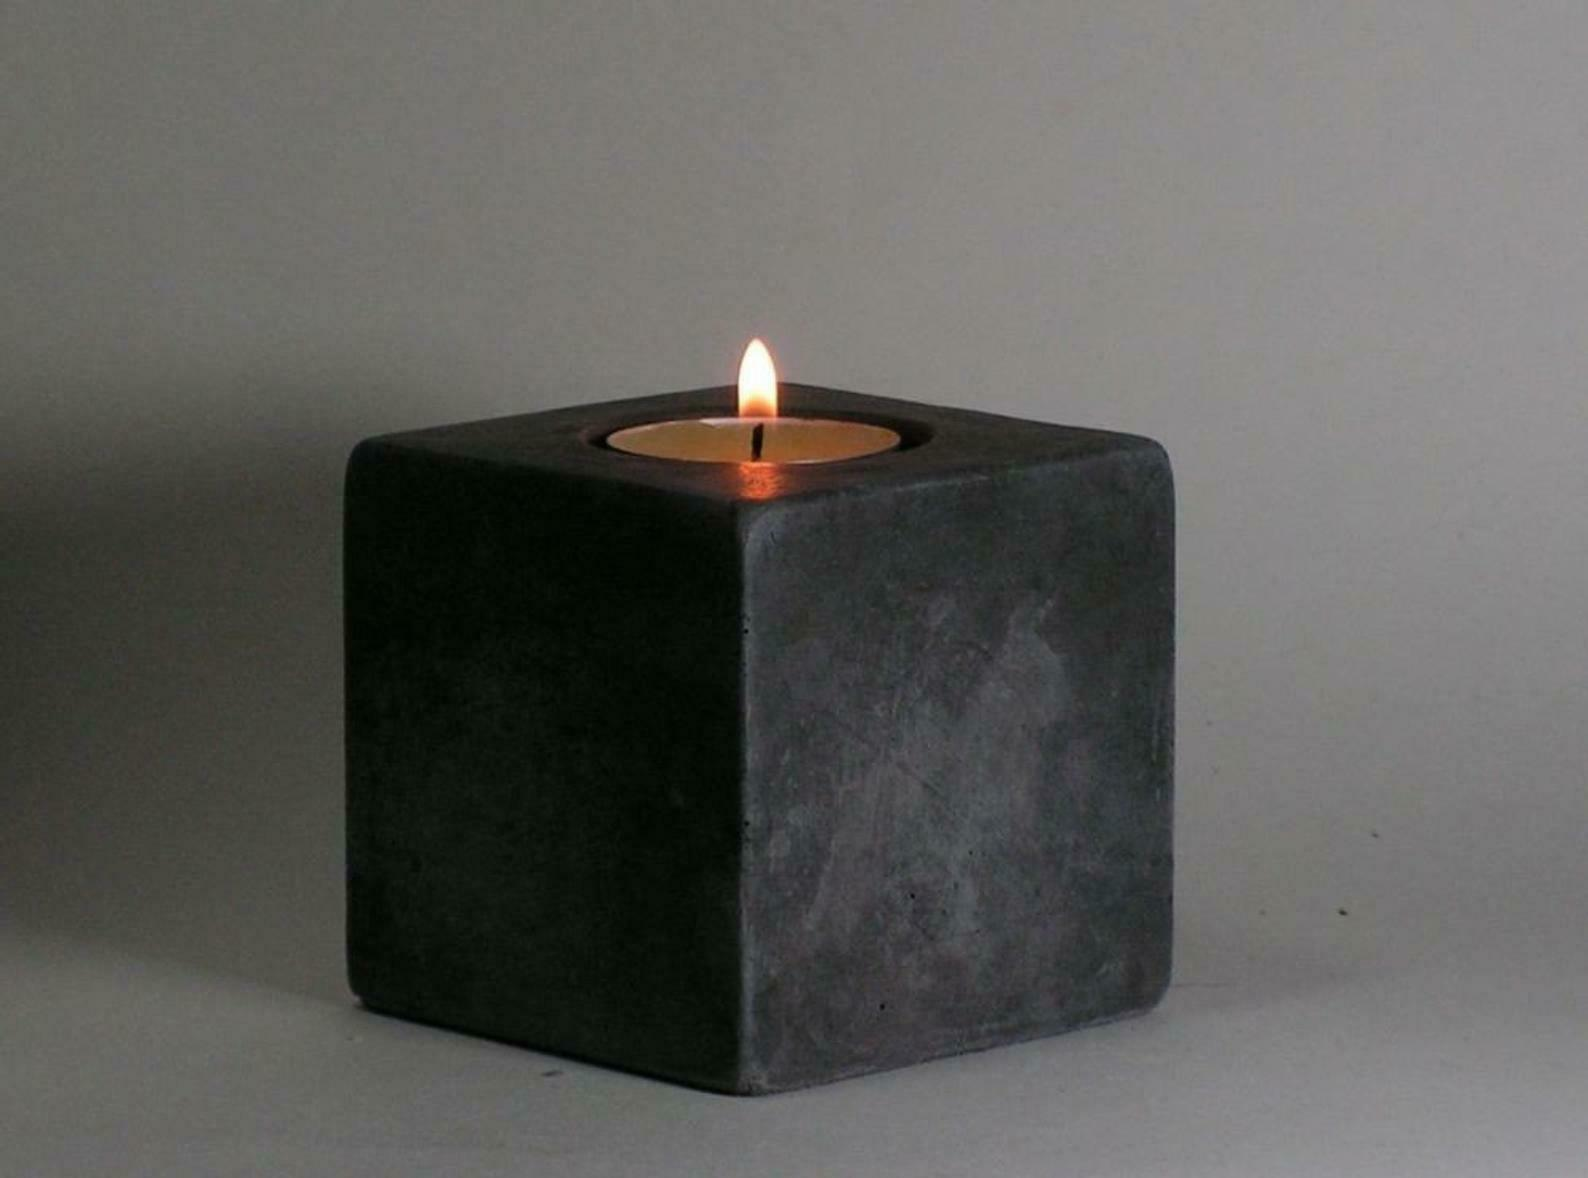 No.13 Cube Concrete Tea Light Candle Holder Handmade Home & Decor Accents